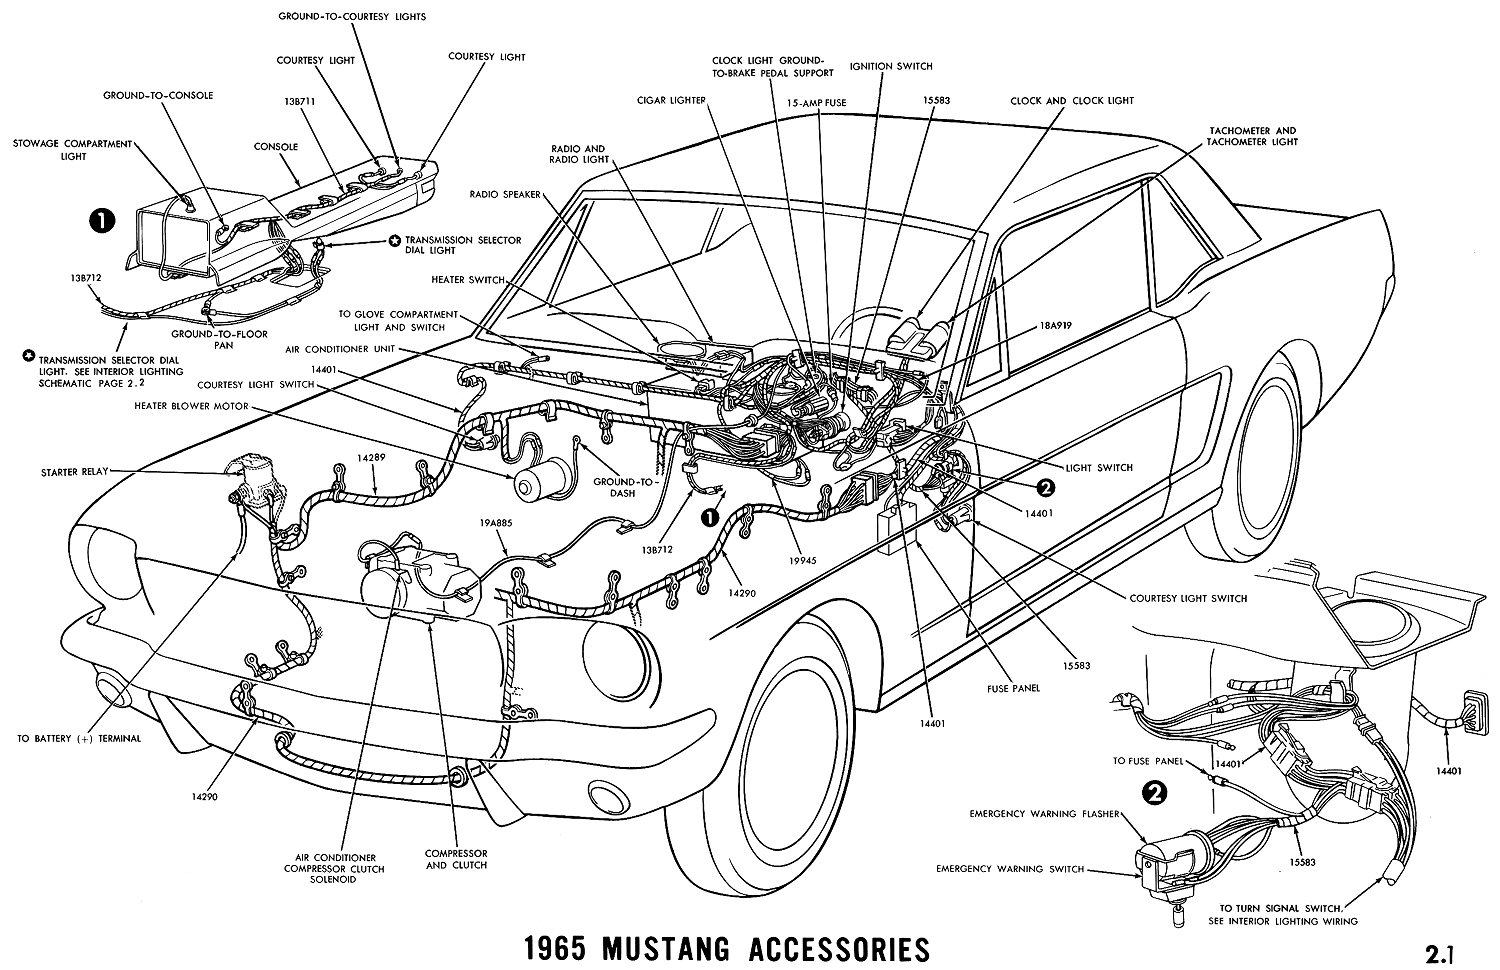 1965h 1965 mustang wiring diagrams average joe restoration 66 mustang ignition wiring diagram at soozxer.org